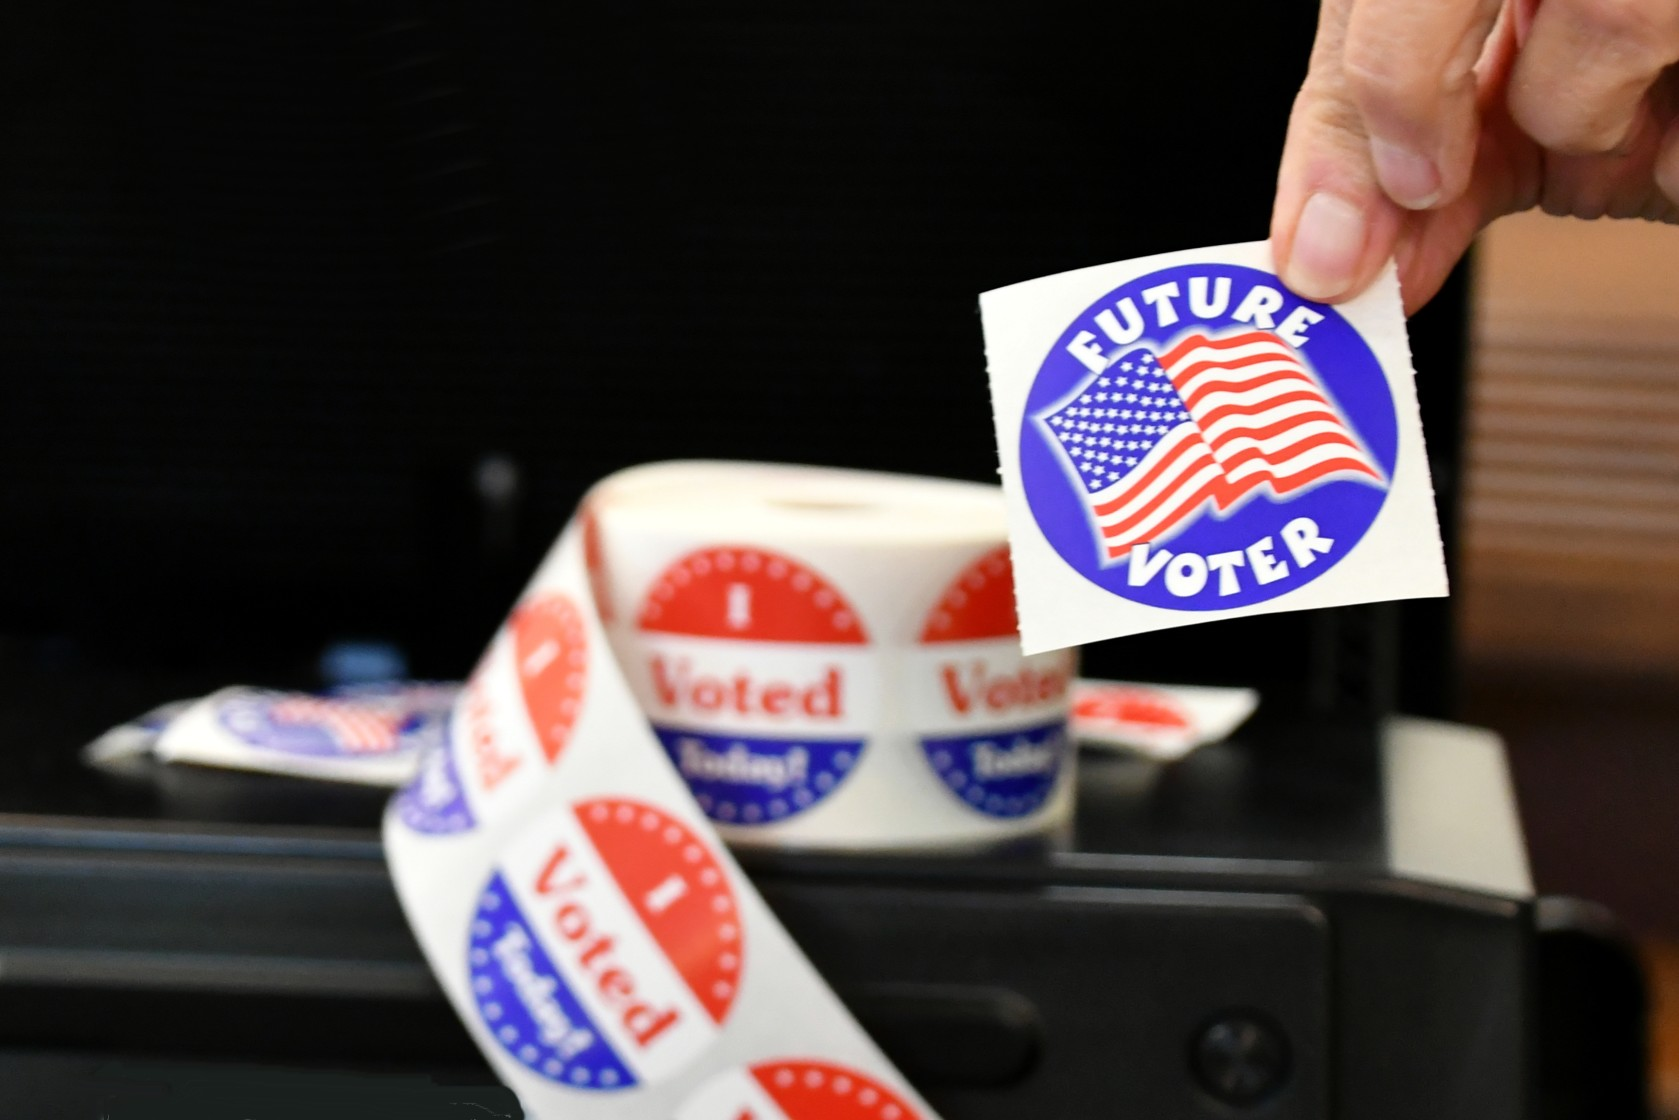 protecting the future of voting